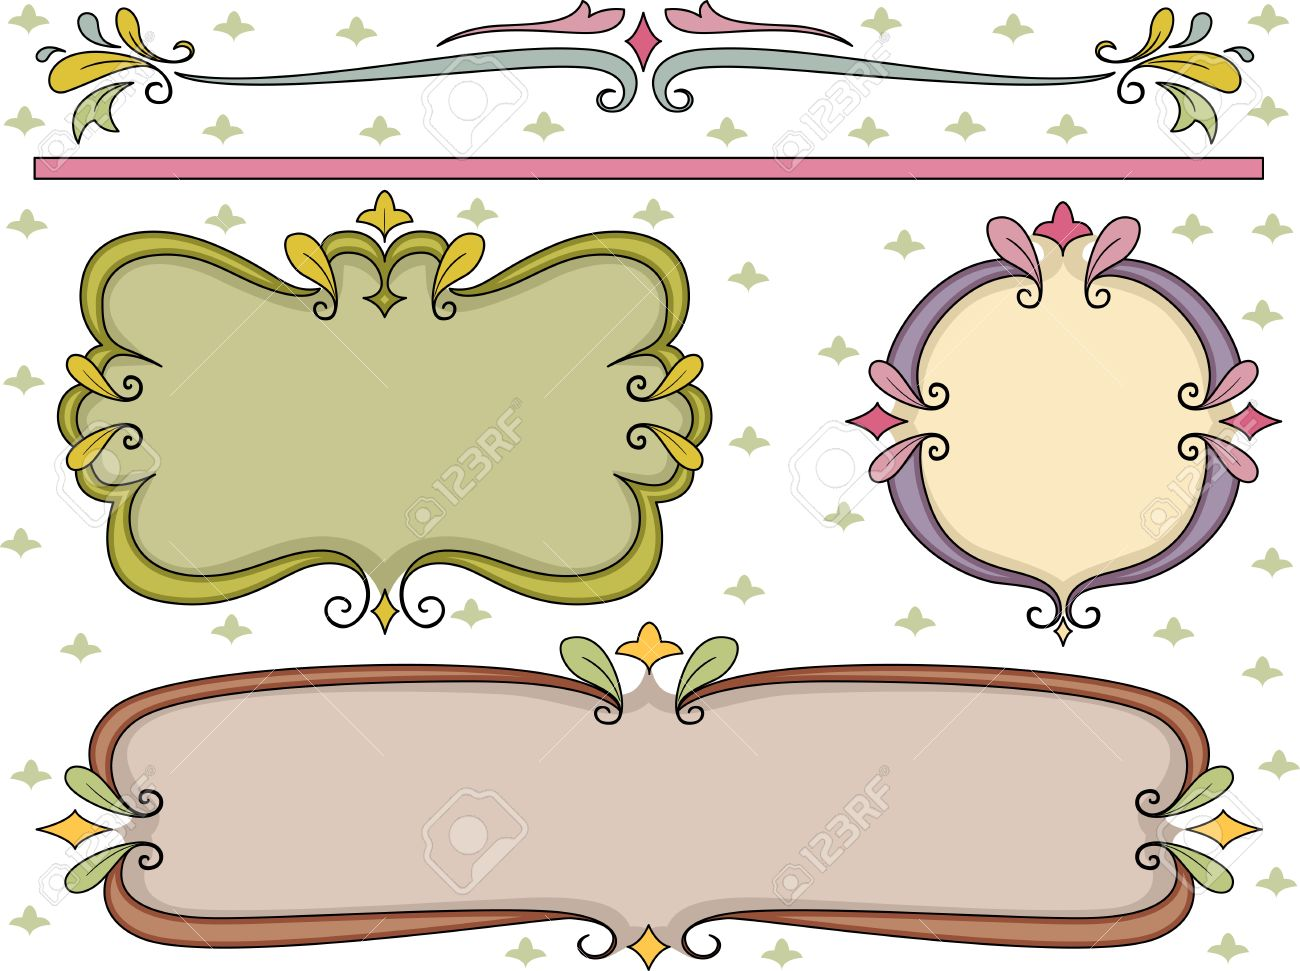 border illustration featuring swirly frames stock illustration 14797056